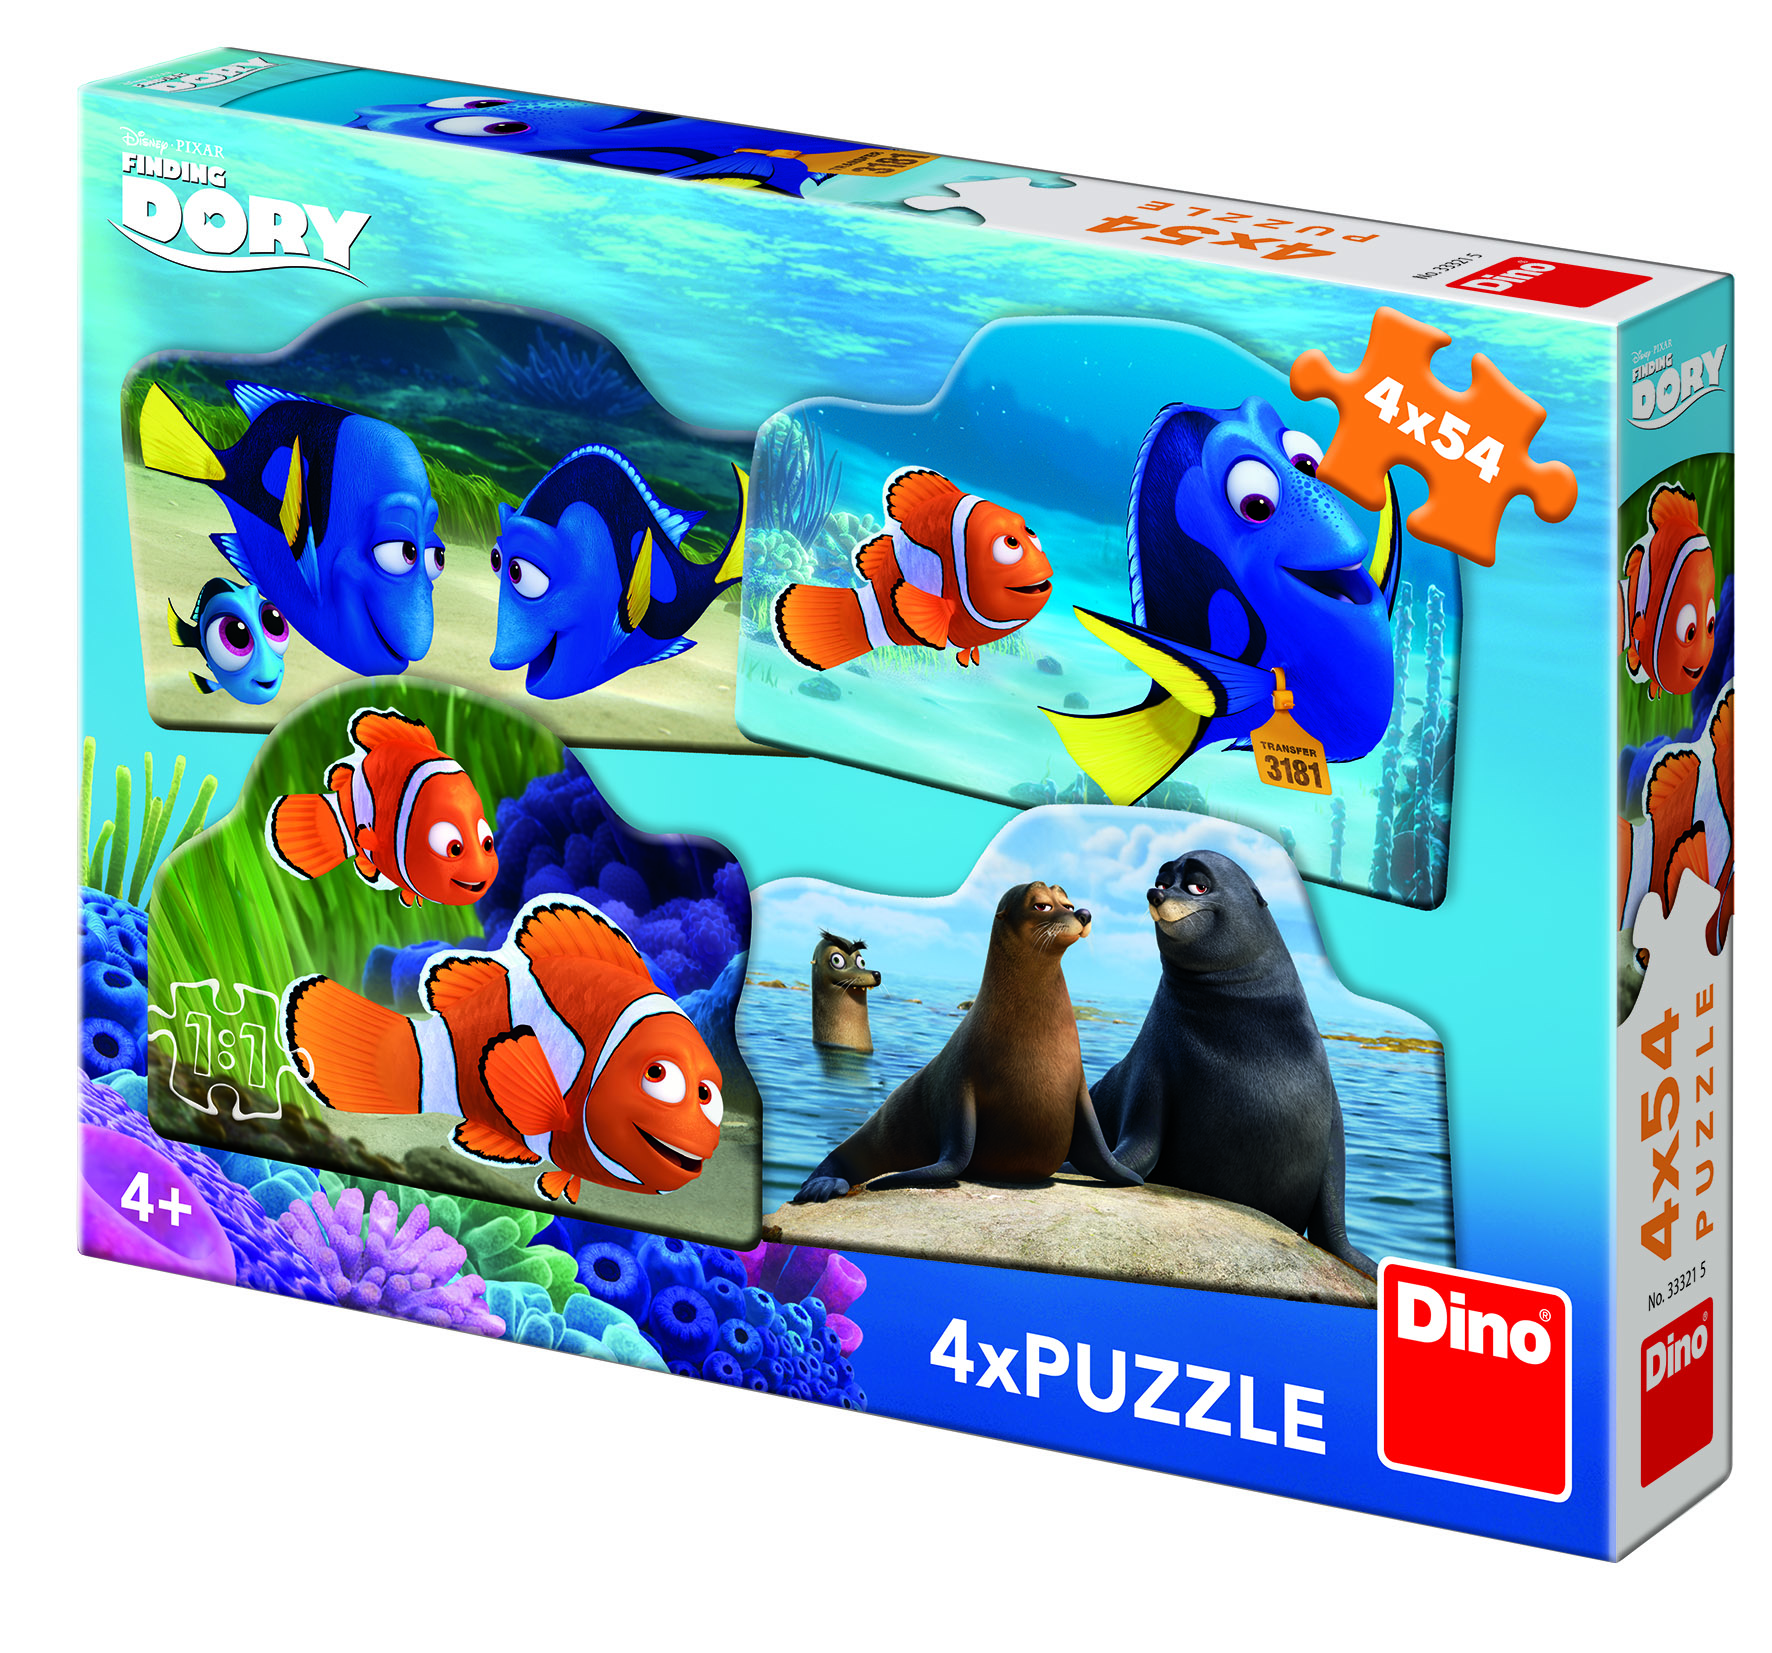 dino-4-puzzles-finding-dory-54-teile-puzzle-dino-33321